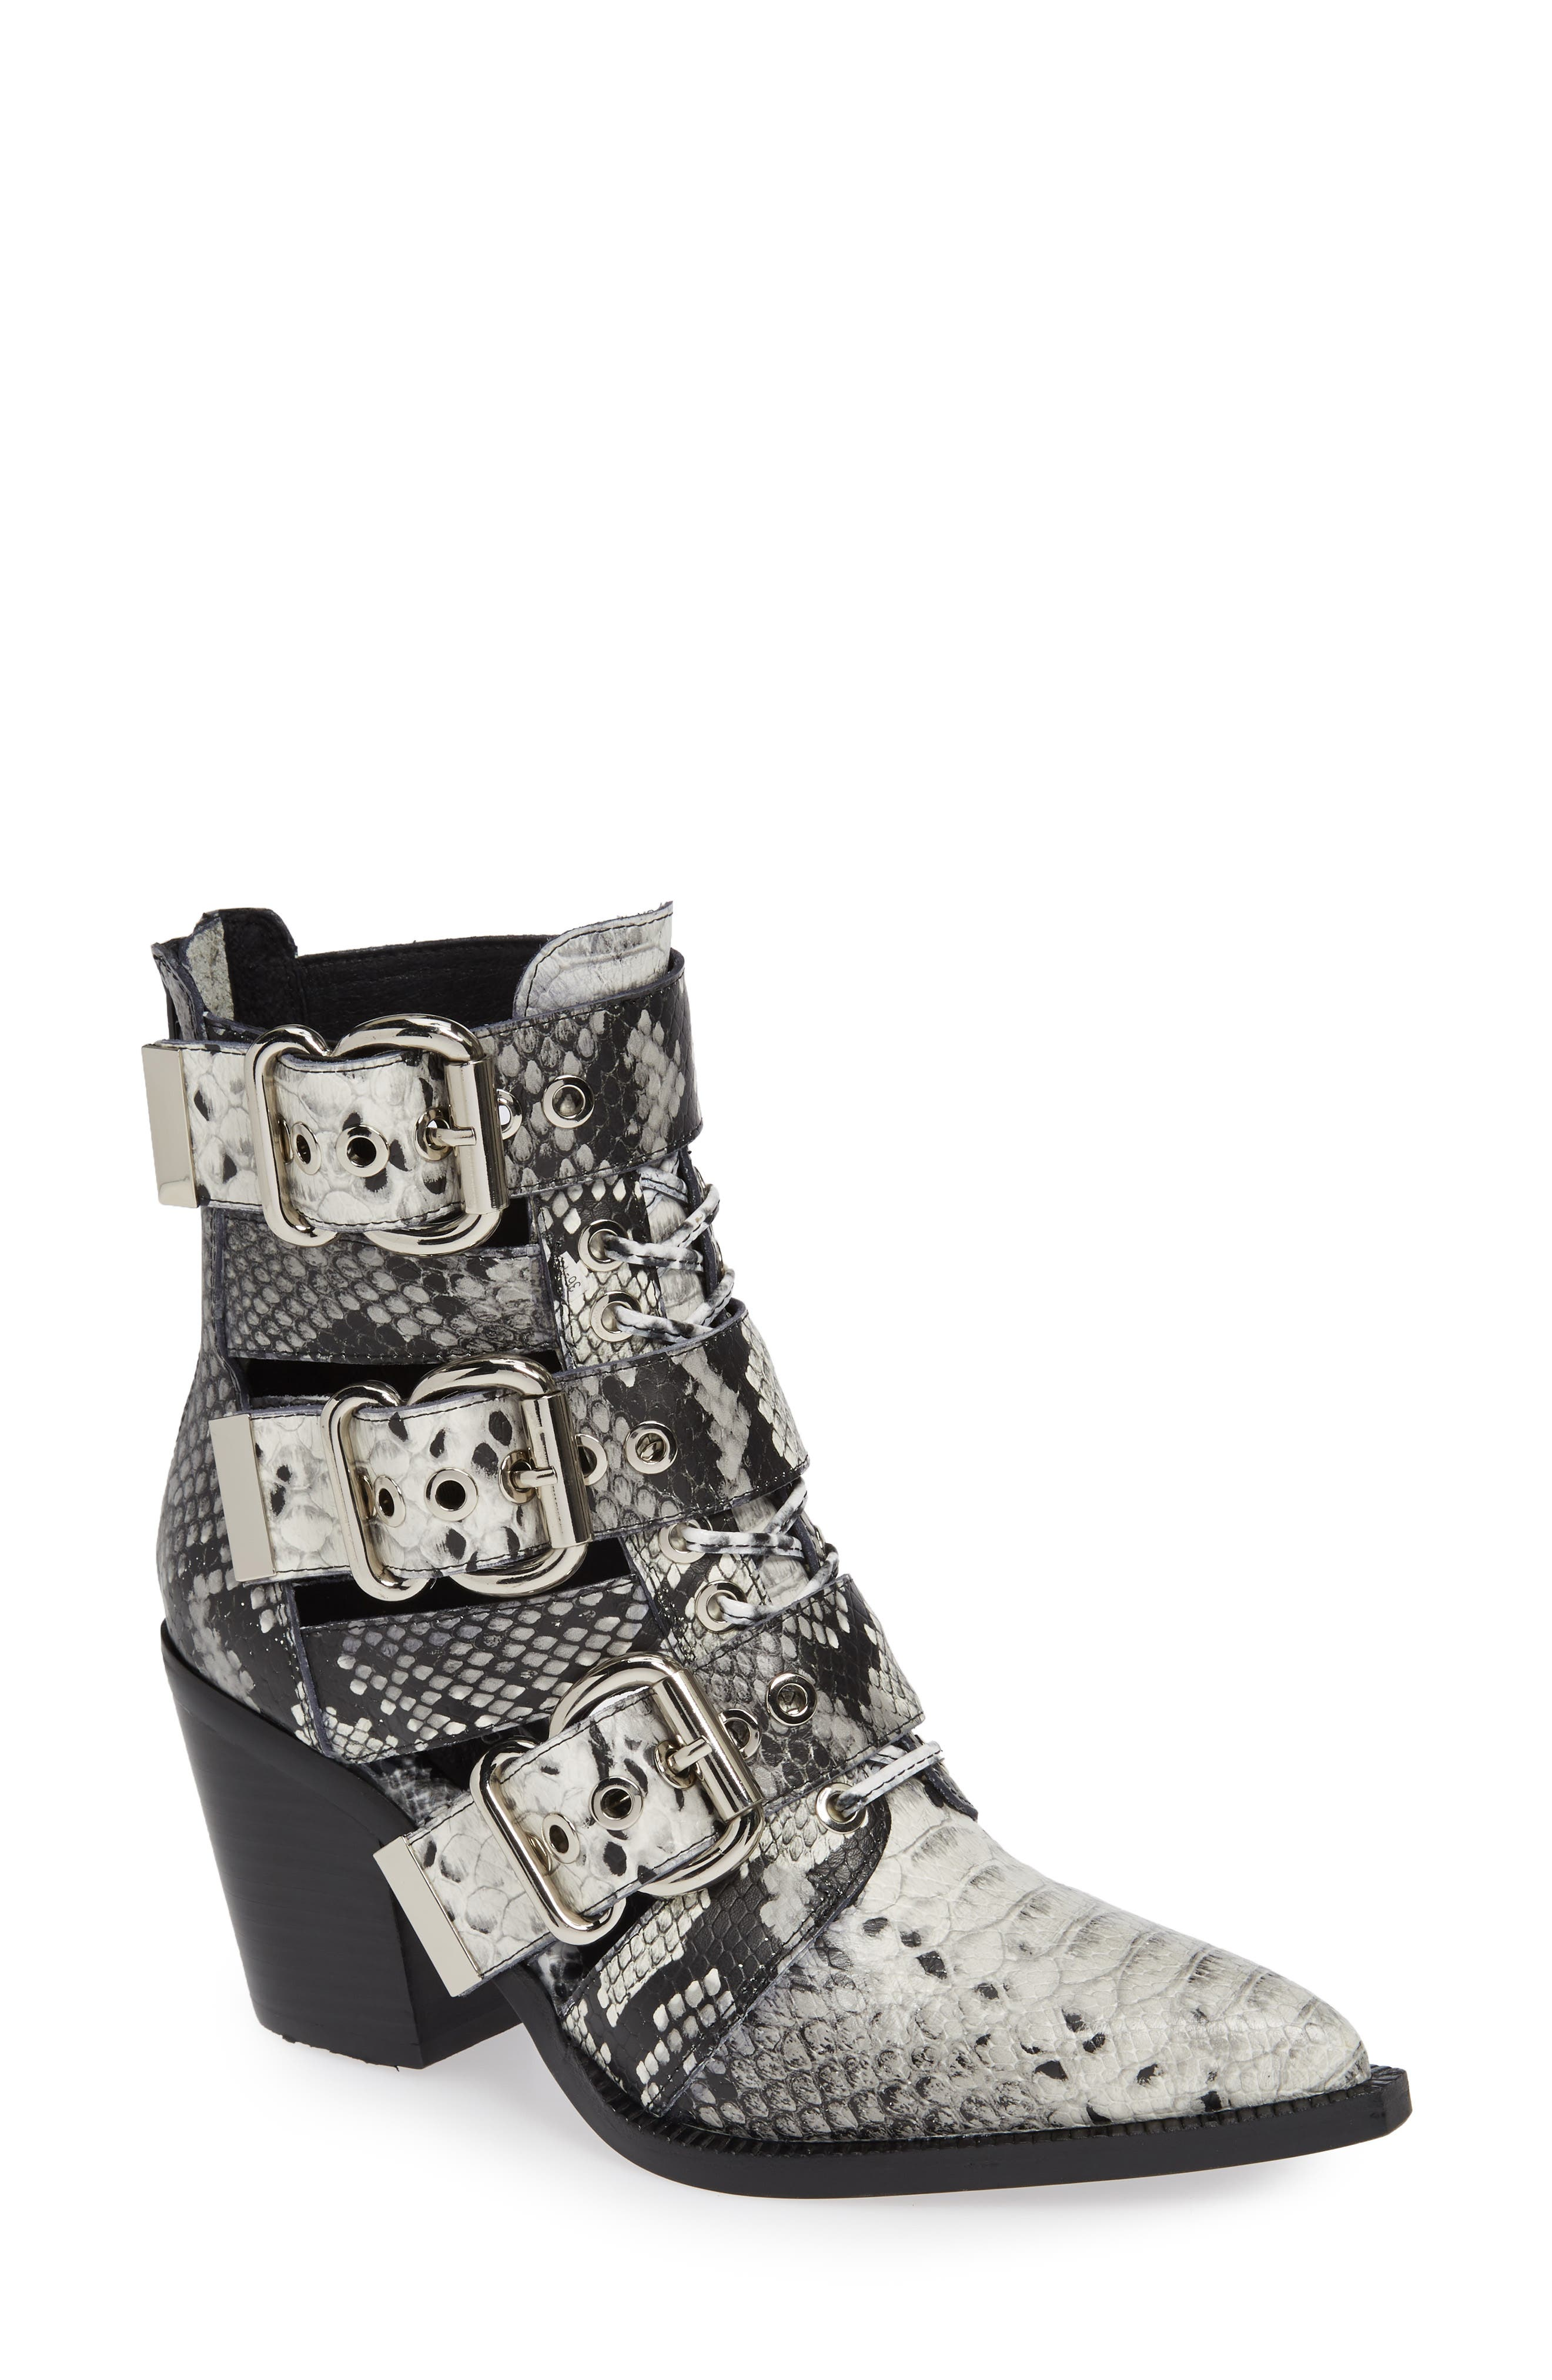 Caceres Bootie,                         Main,                         color, BLACK WHITE SNAKE PRINT